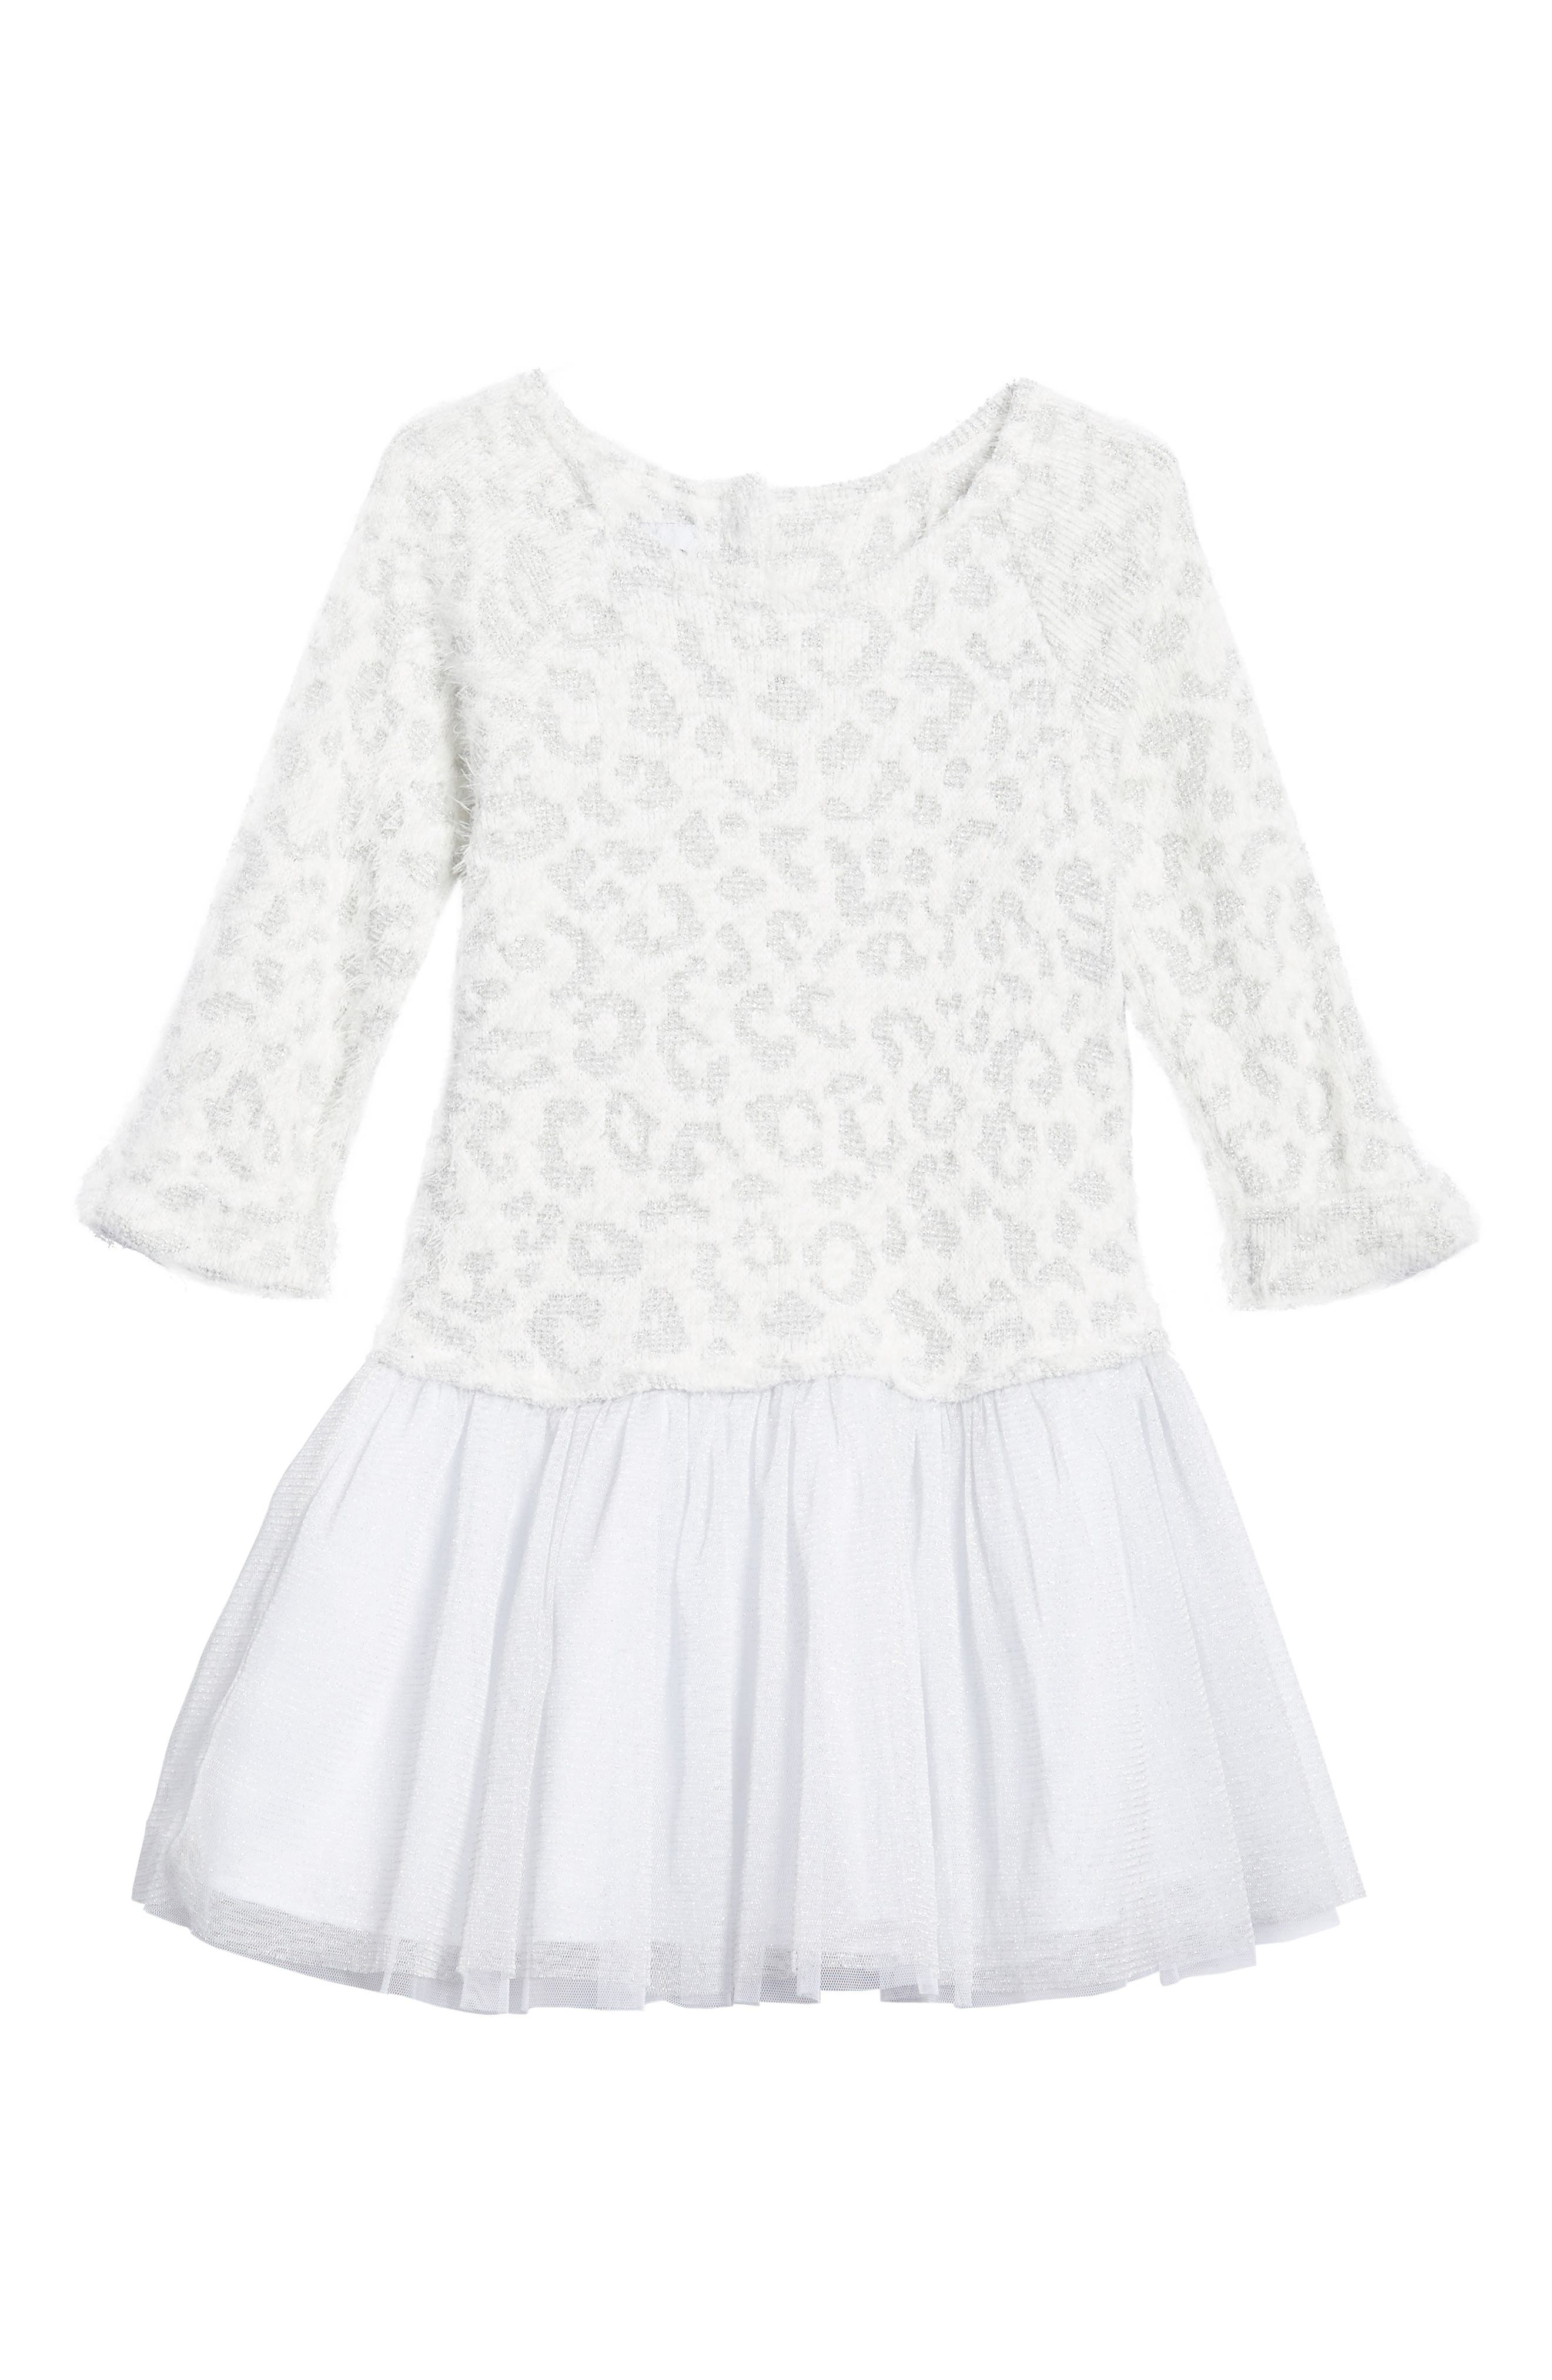 Kids' White Special Occasions Shop: Blazers, Dresses